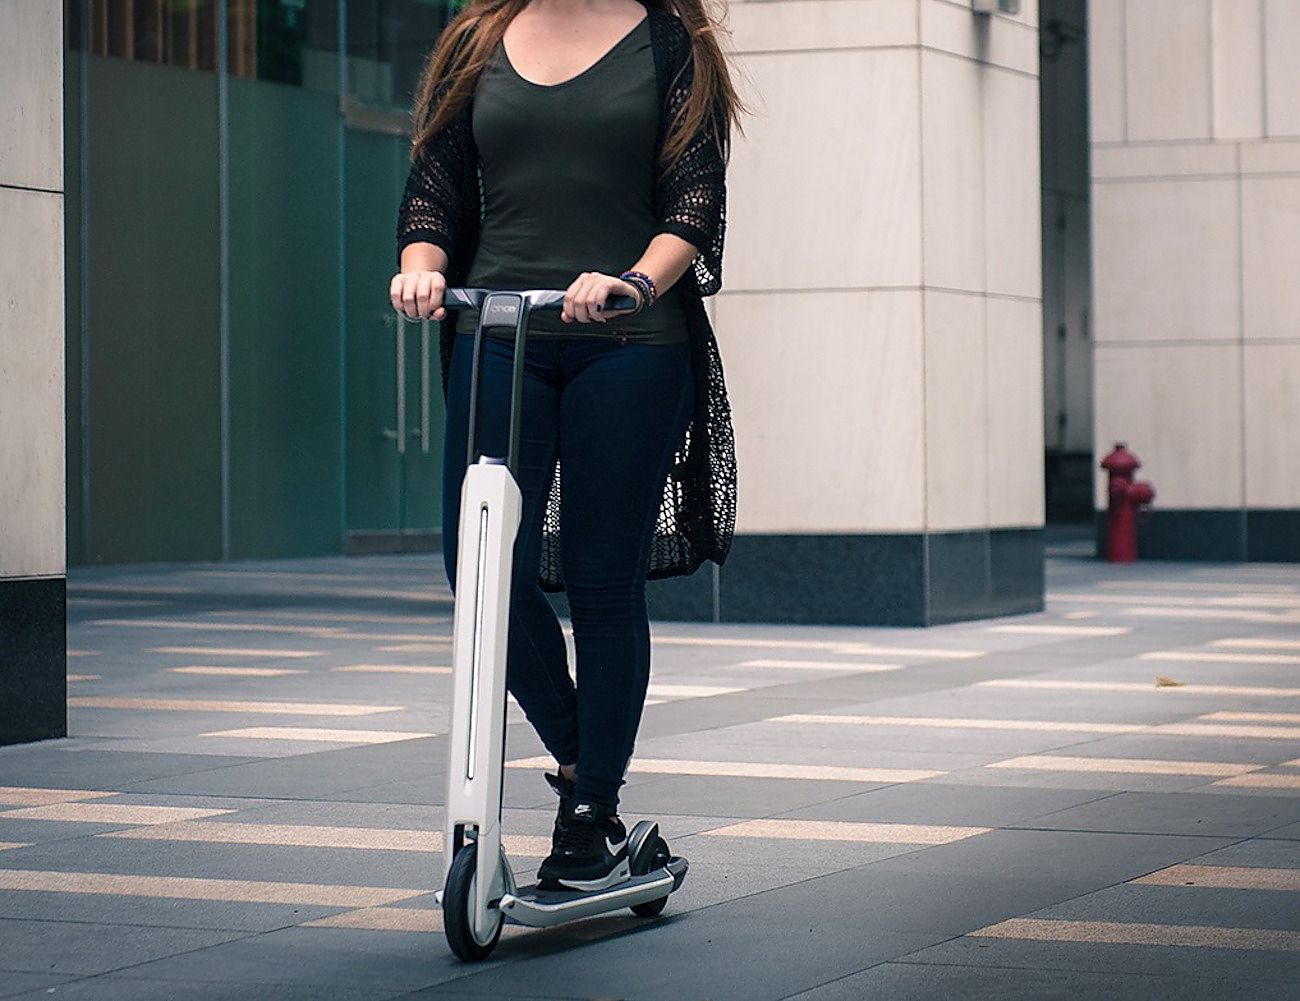 CityGo Urban – Changing your Urban Commute Forever